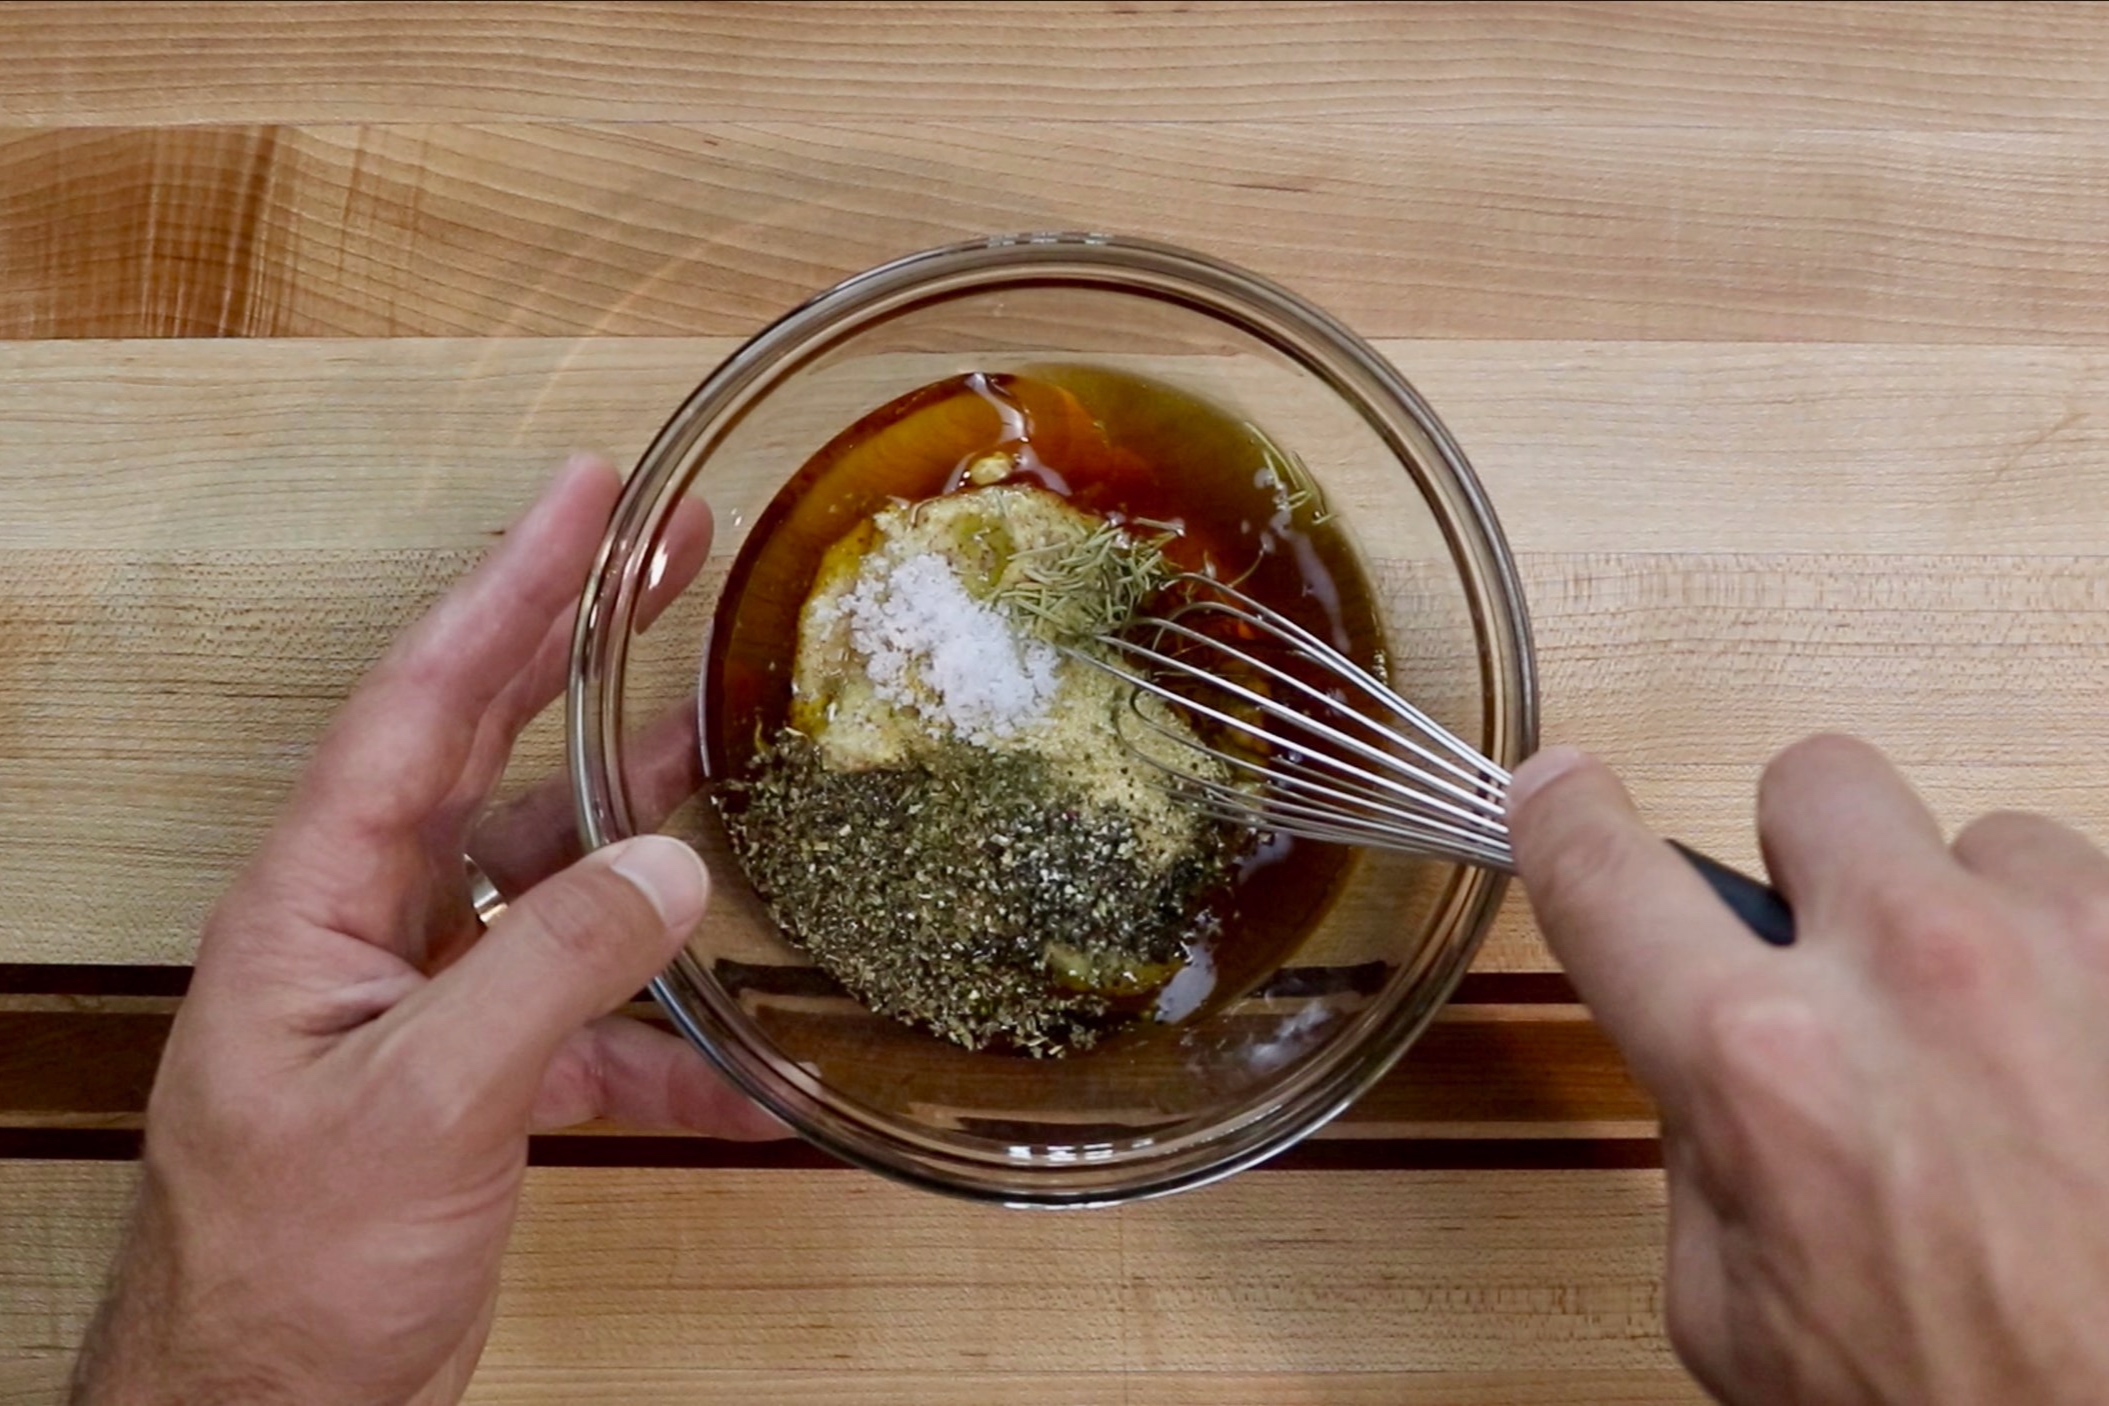 1. Make the marinade. In a small bowl, add the maple syrup, mustard, olive oil, garlic powder, onion powder, basil, rosemary, salt and pepper. Whisk together until combined. Set aside 1/2 cup of the marinade cover and refrigerate. -